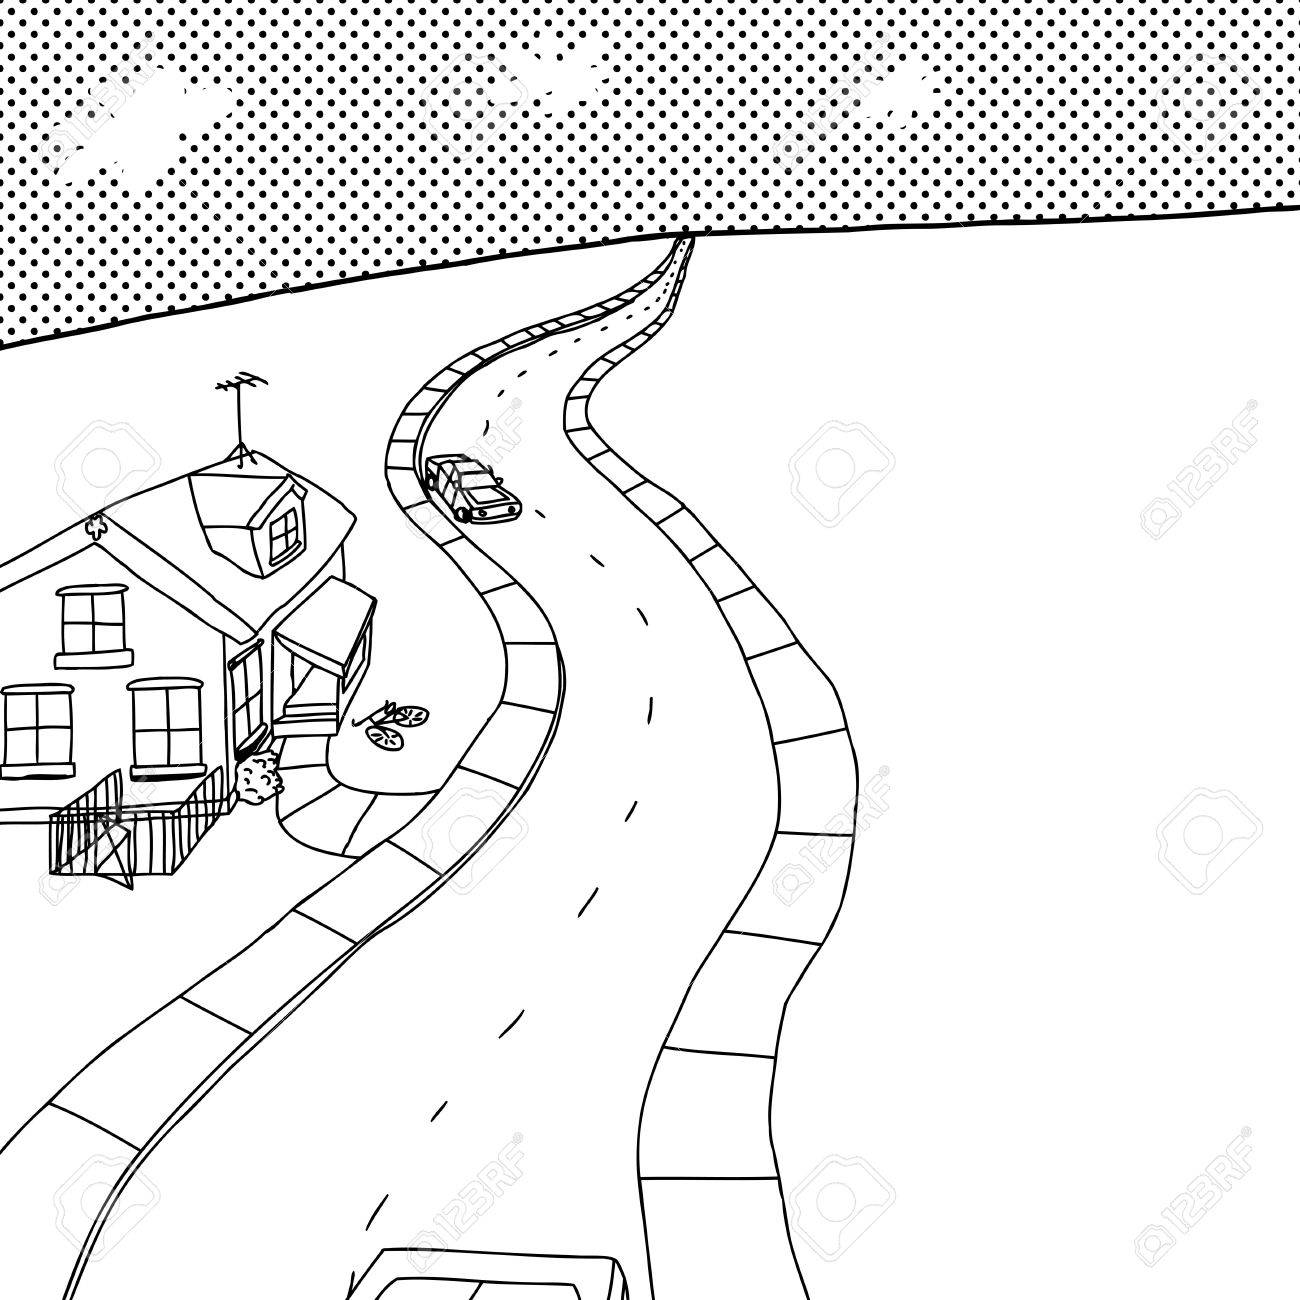 1300x1300 Outline Cartoon Of Street With Little House And Cars Royalty Free